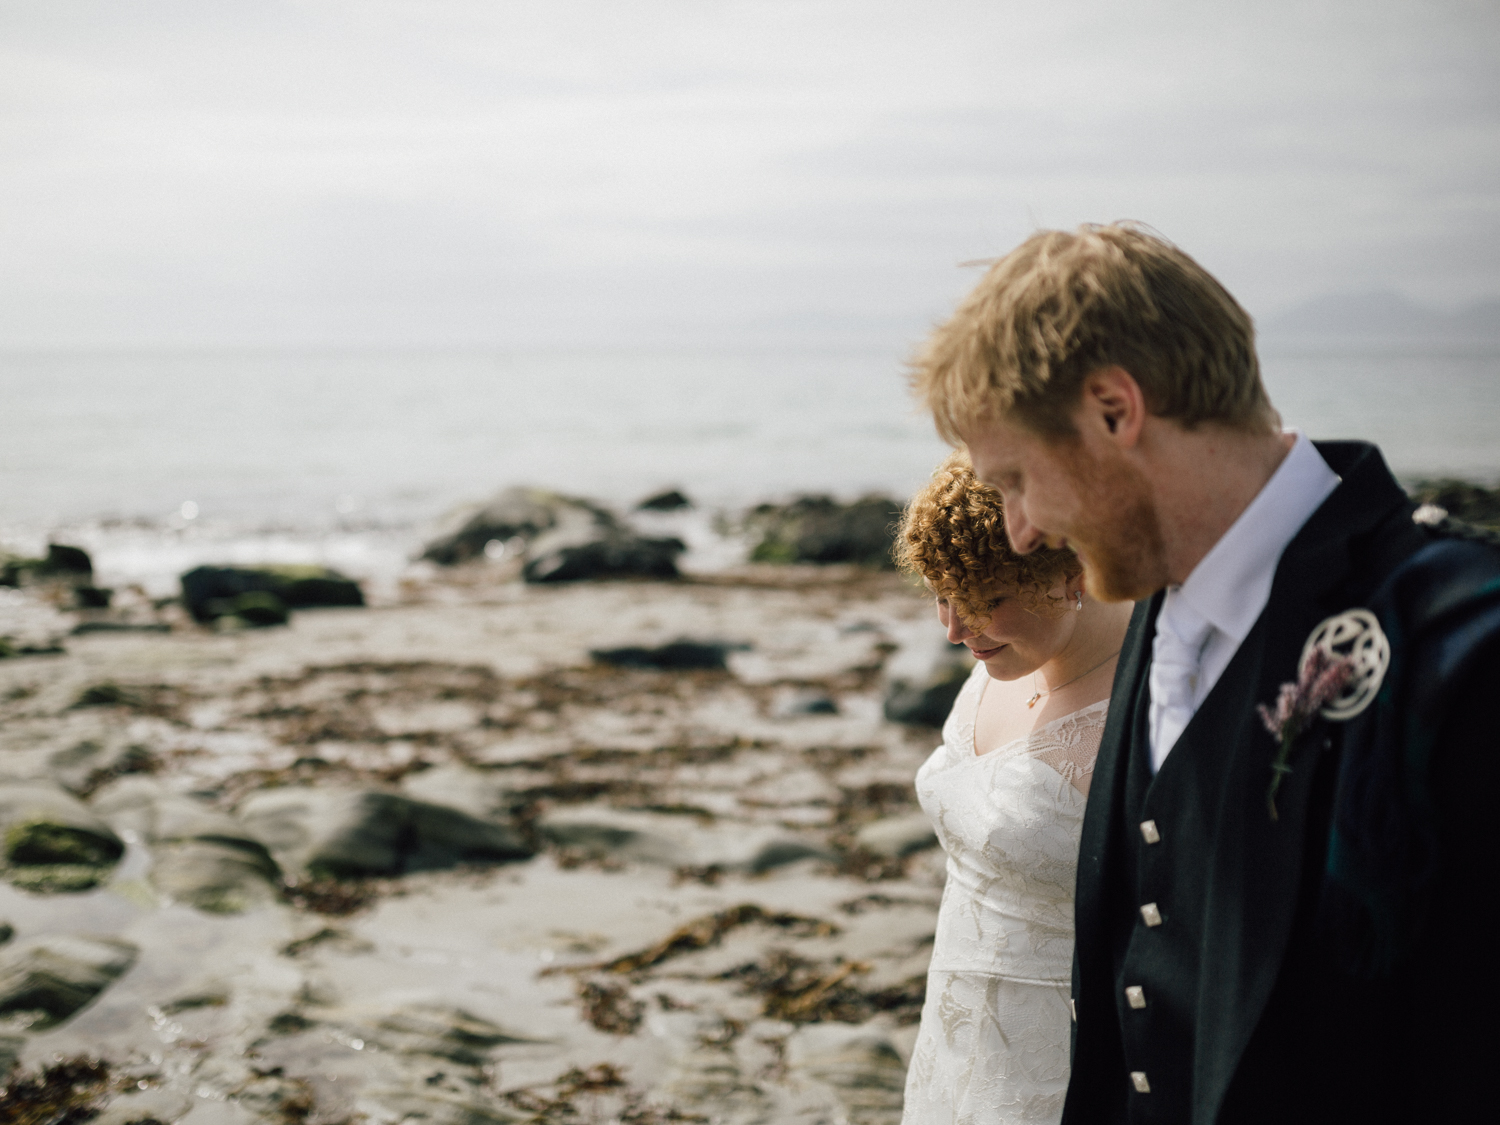 capyture-wedding-photographer-destination-crear-scotland-633